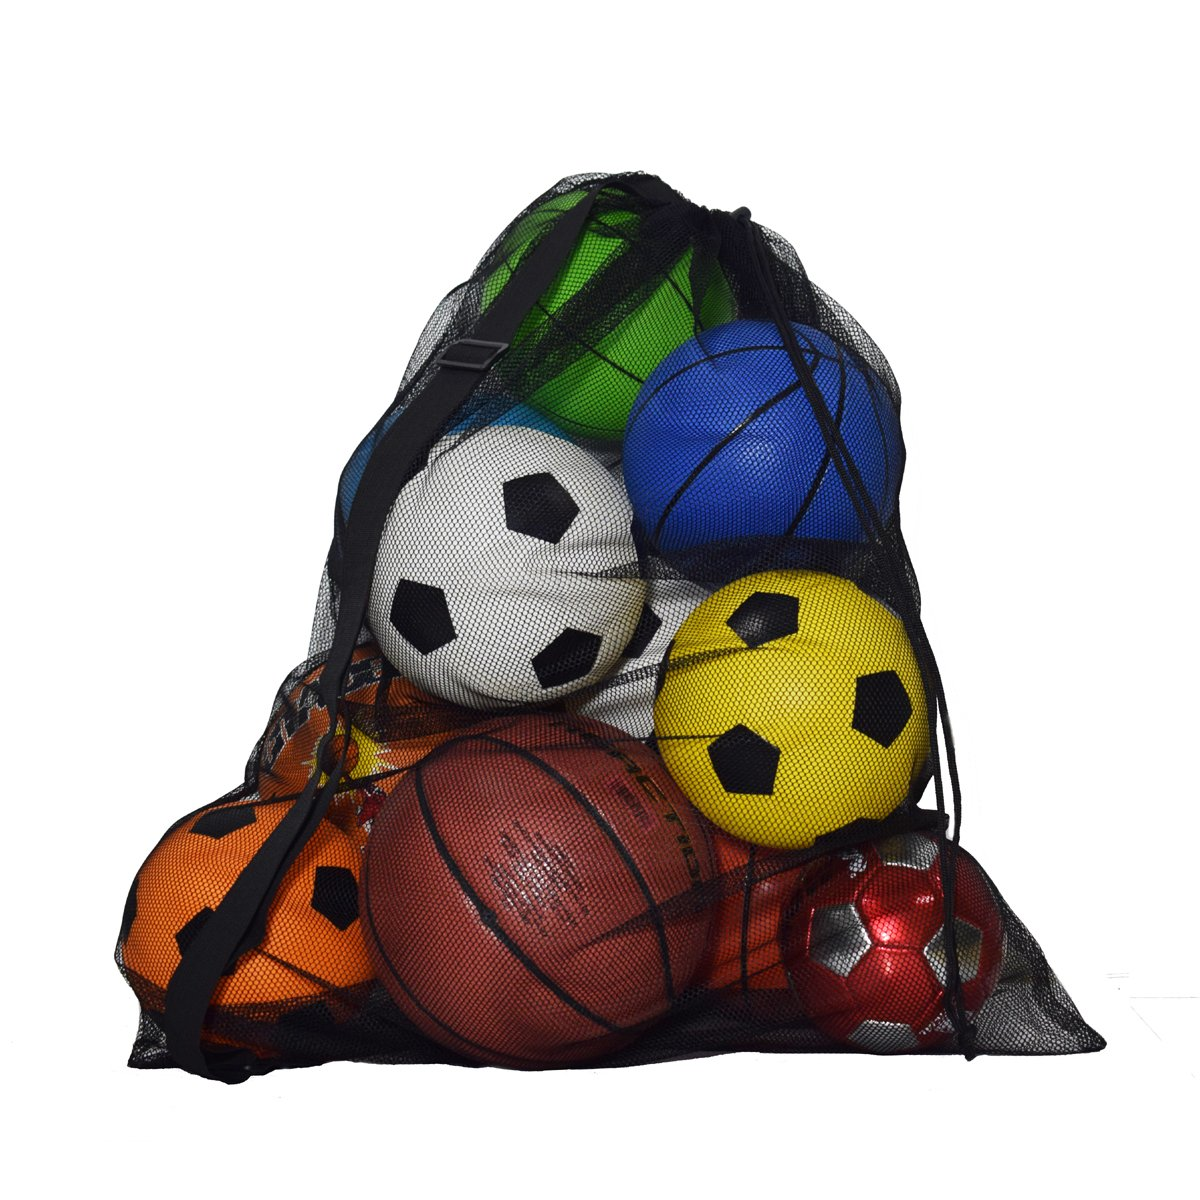 Pro-traveller Extra Large Sports Drawstring Mesh Ball Bag Training Equipment Storage Bag Diving Goods Organizer With Shoulder Strap